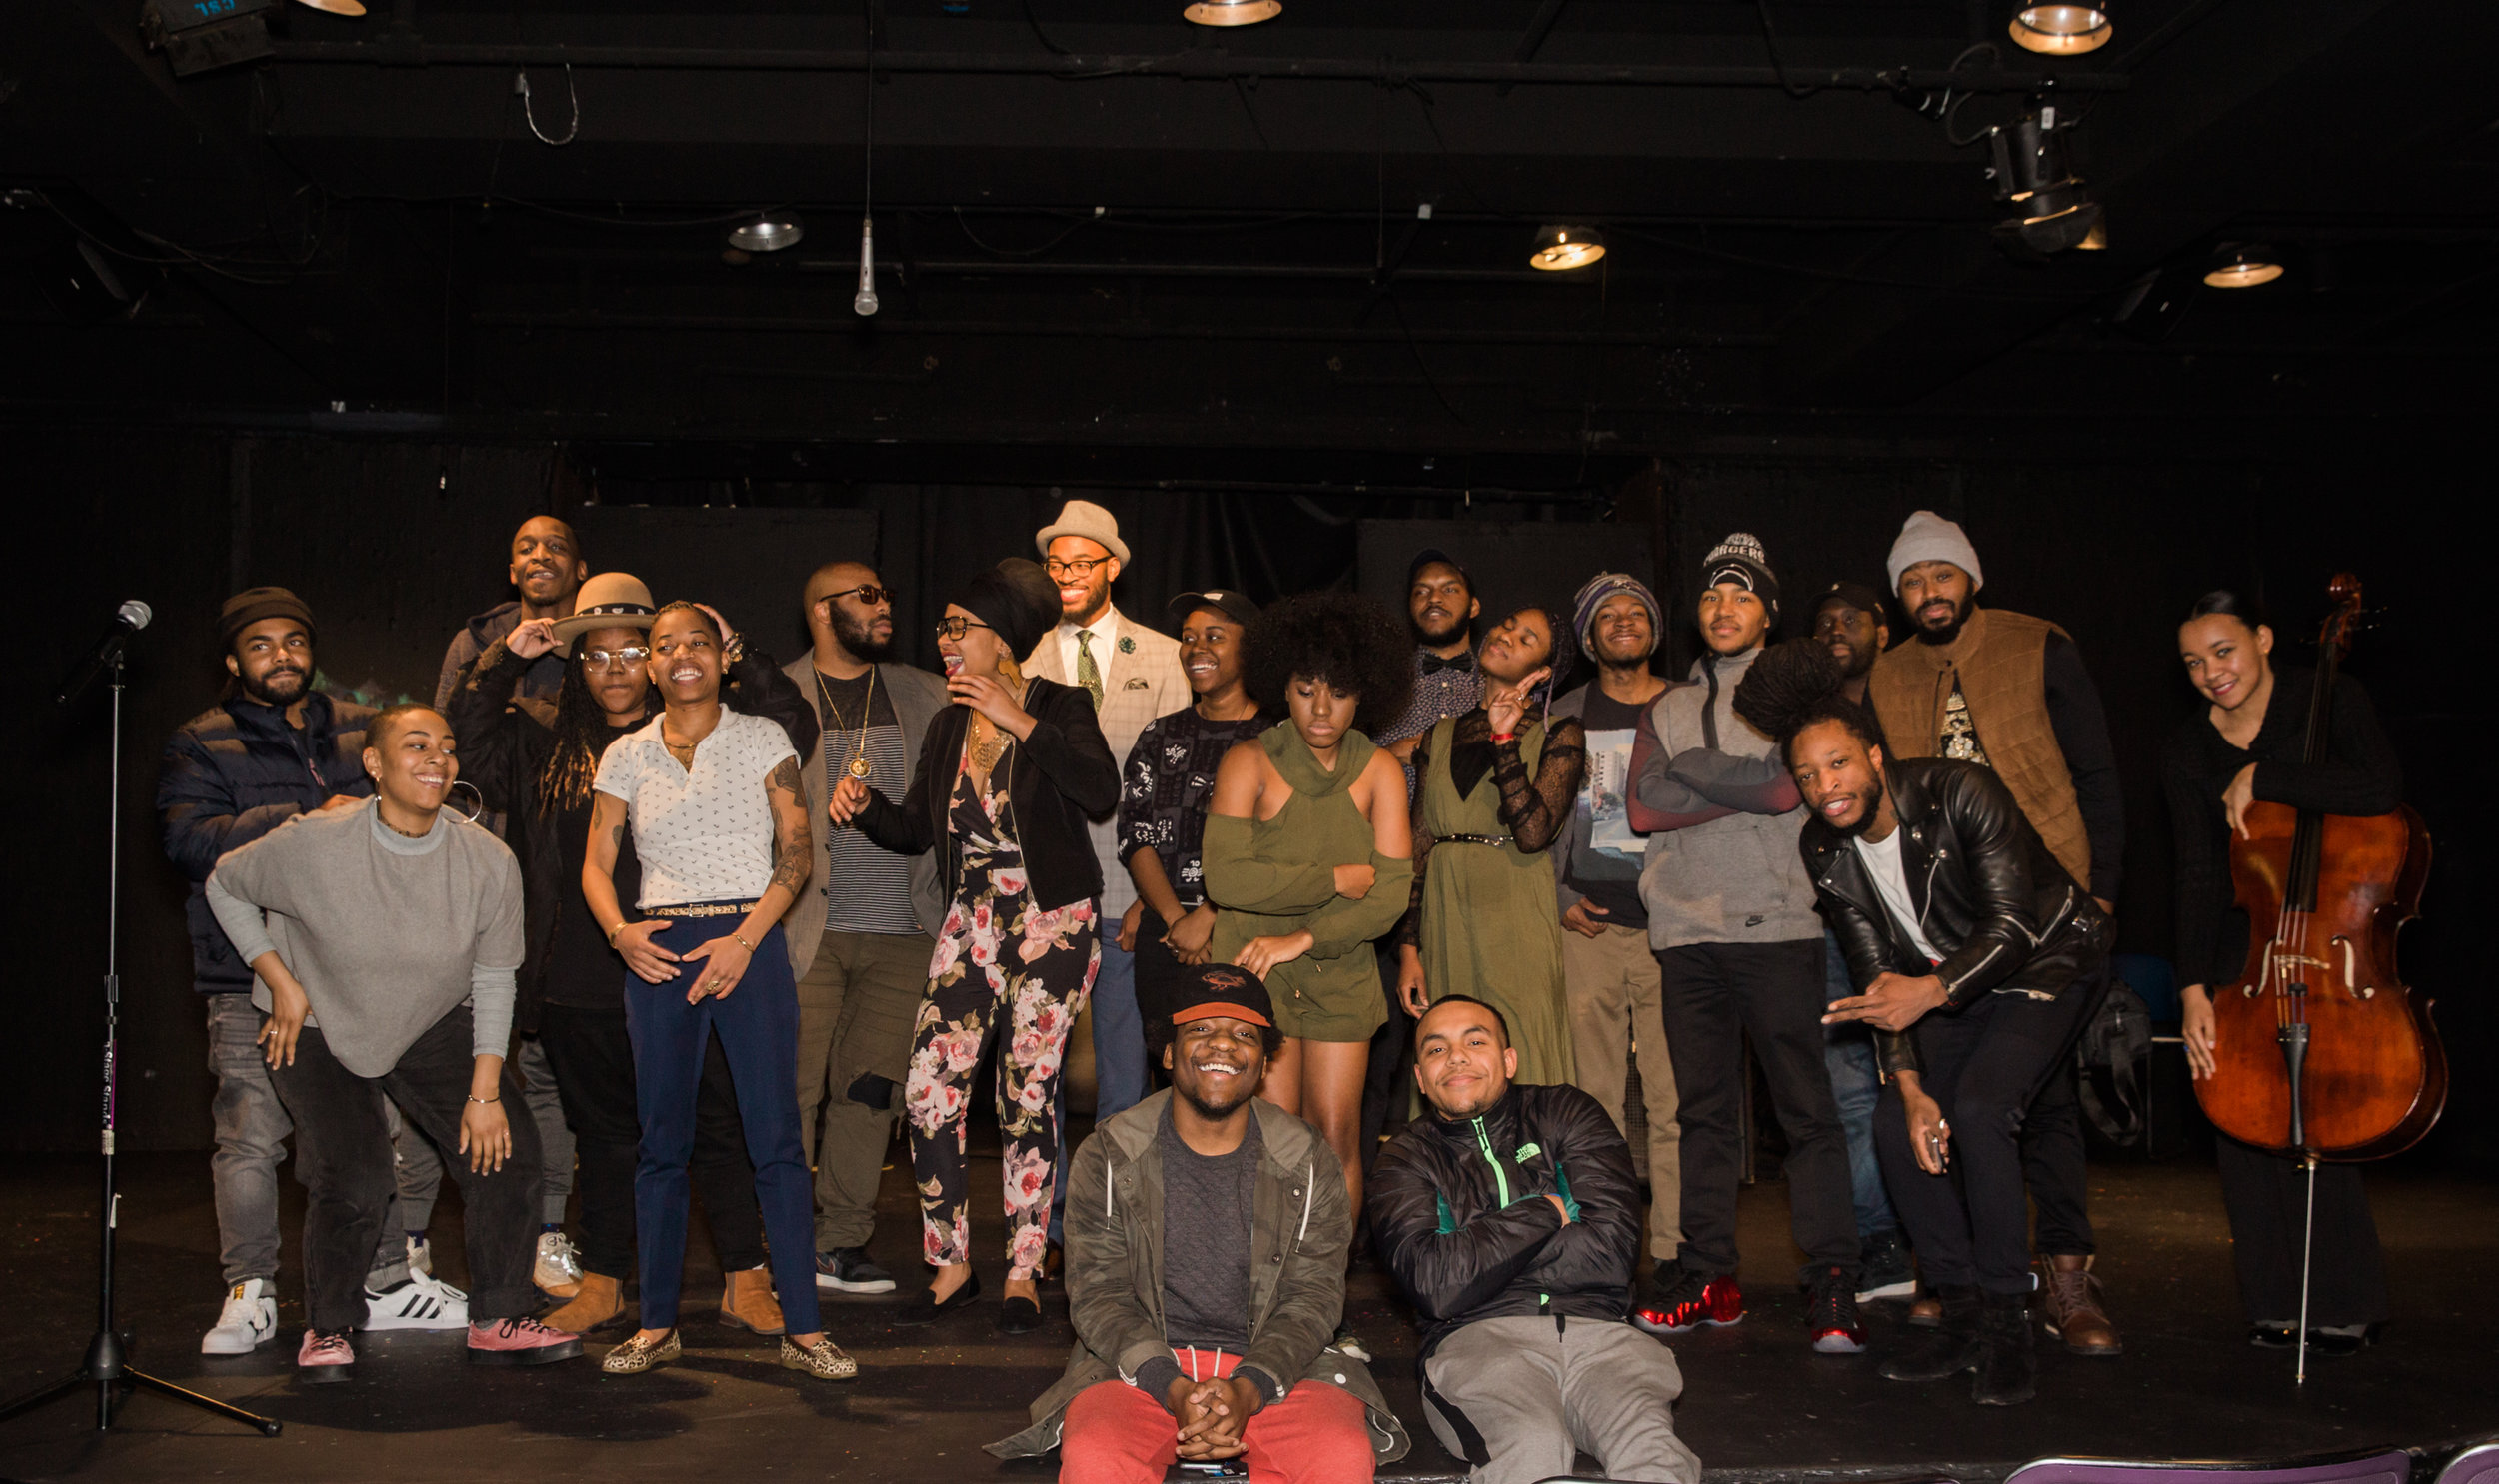 Group of Black Poets and Artists in Baltimore Poet Named Nate Poetry Photography-28.jpg